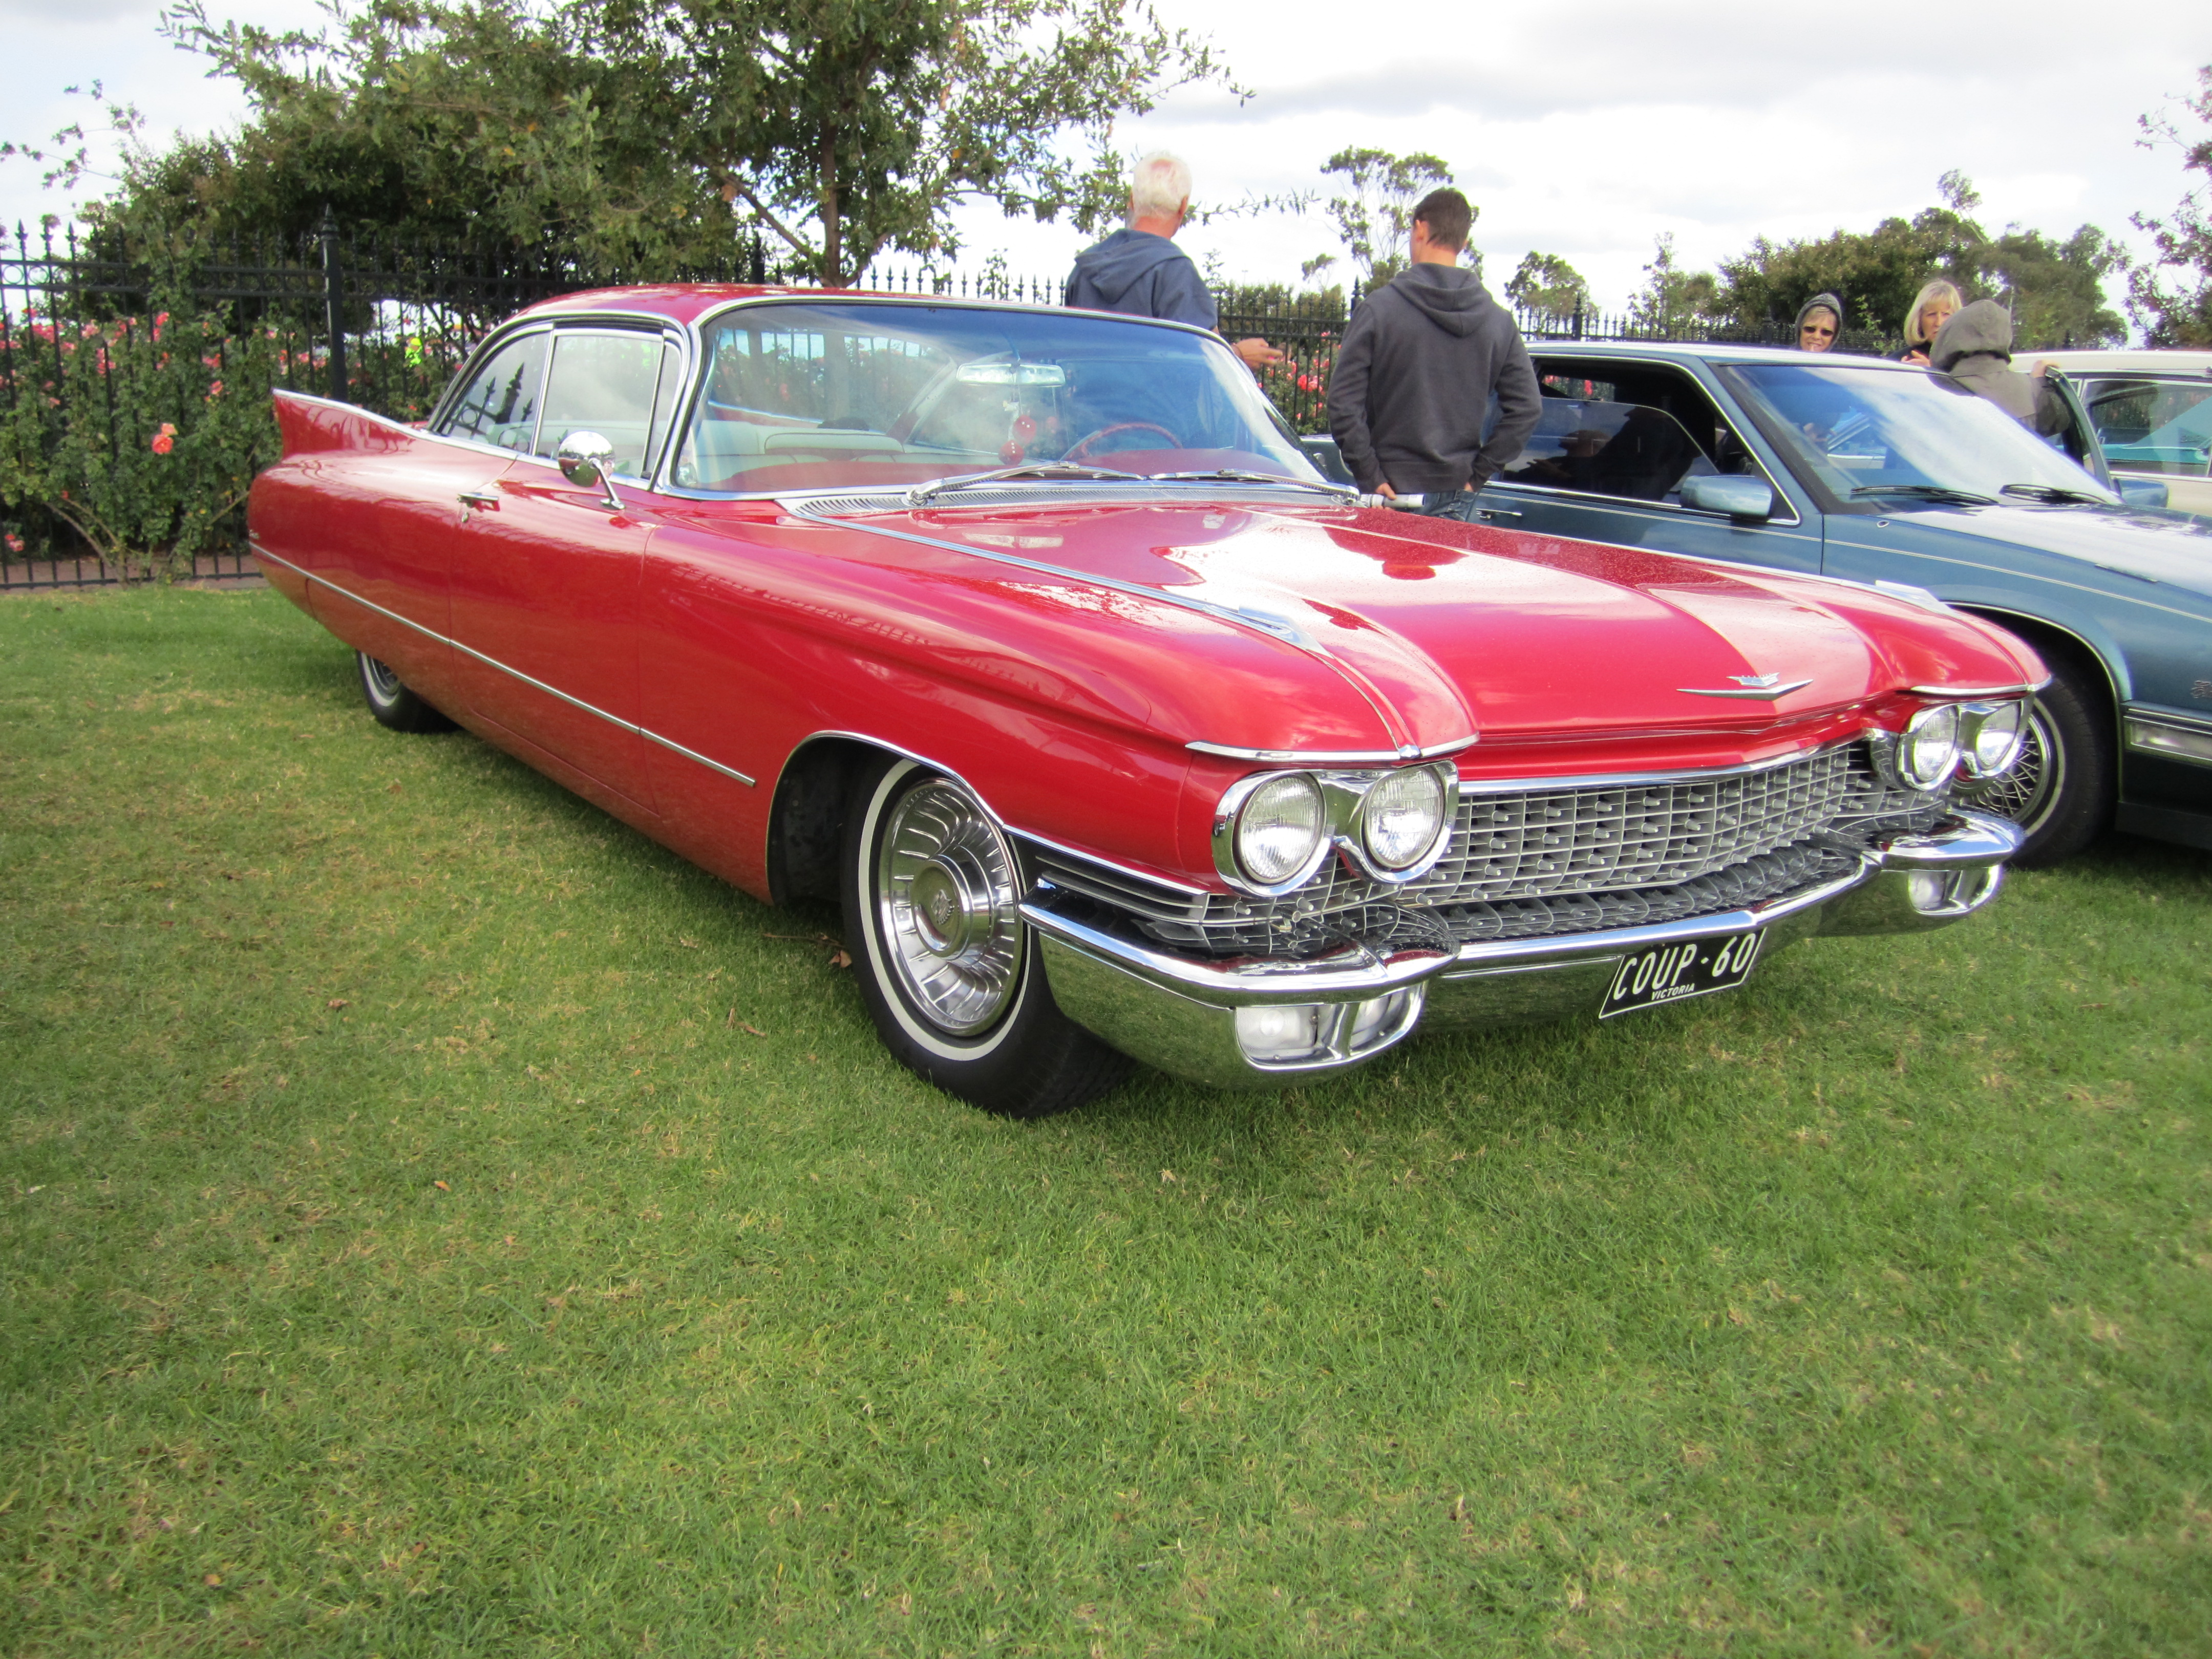 File:1960 Cadillac Coupe deVille.jpg - Wikimedia Commons